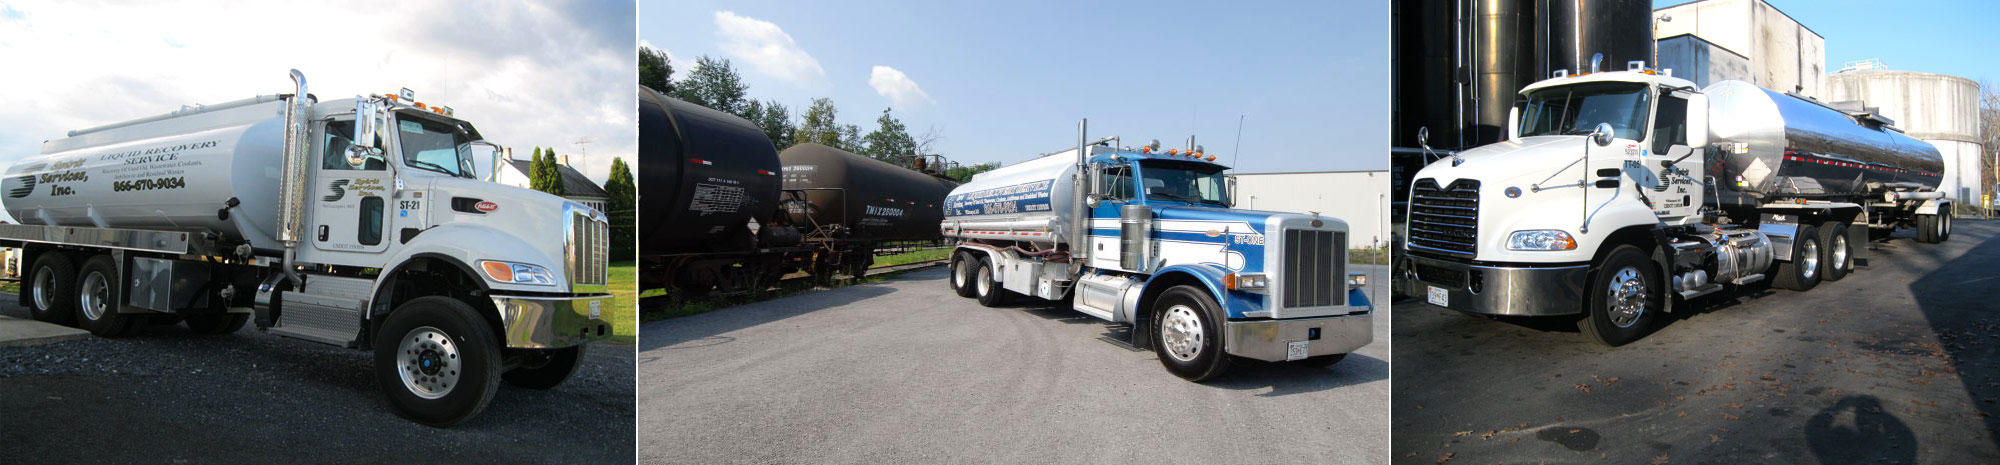 Spirit Services provides the Mid-Atlantic & Southeast United States with full service environmental recycling services.  Collection, treatment & sale of used oil, & solids.